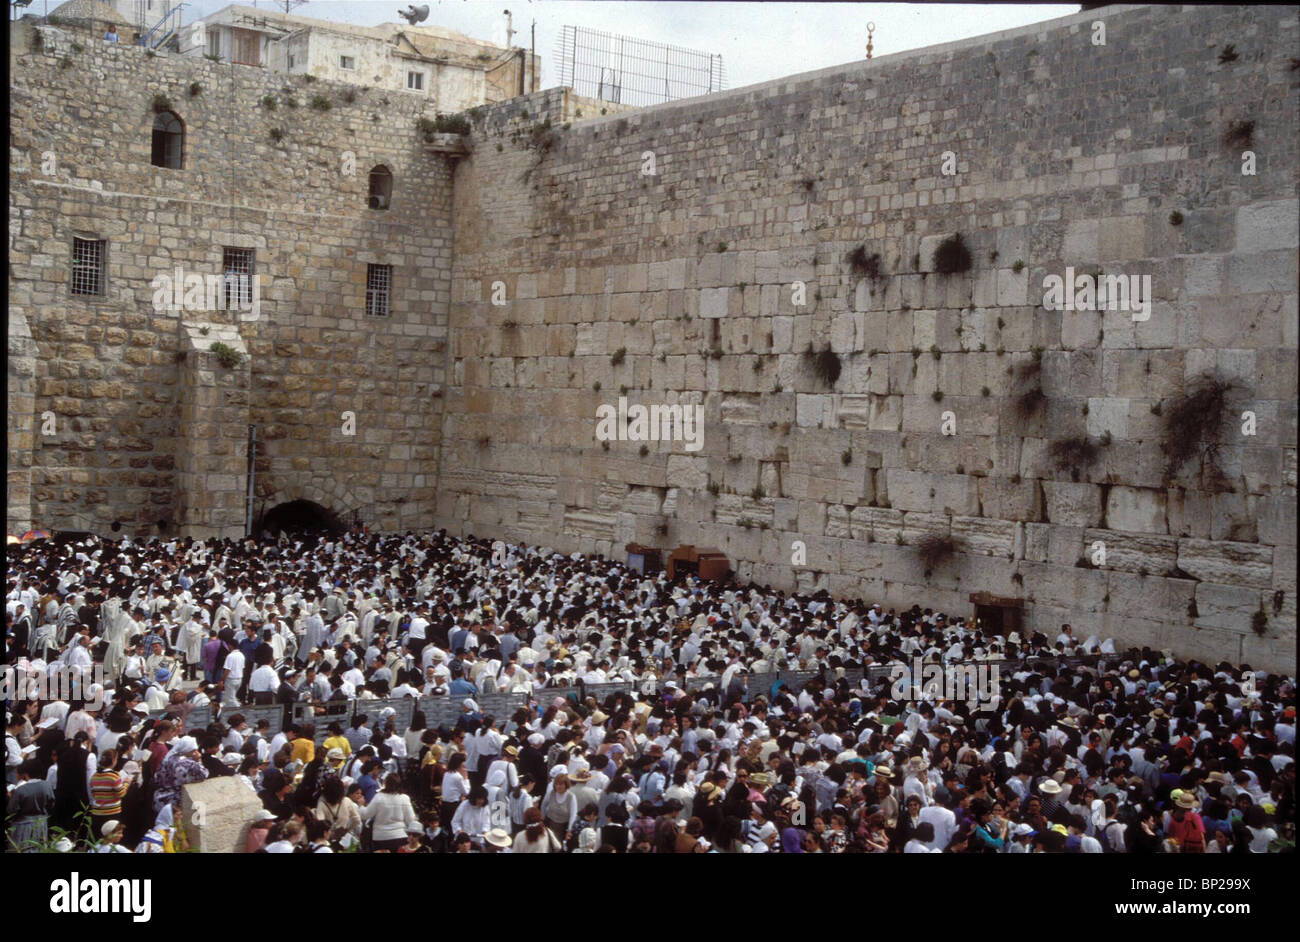 2821. JEWS PRAYING AT THE WESTERN WALL DURING THE PASSOVER PILGRIMAGE TO JERUSALEM - Stock Image